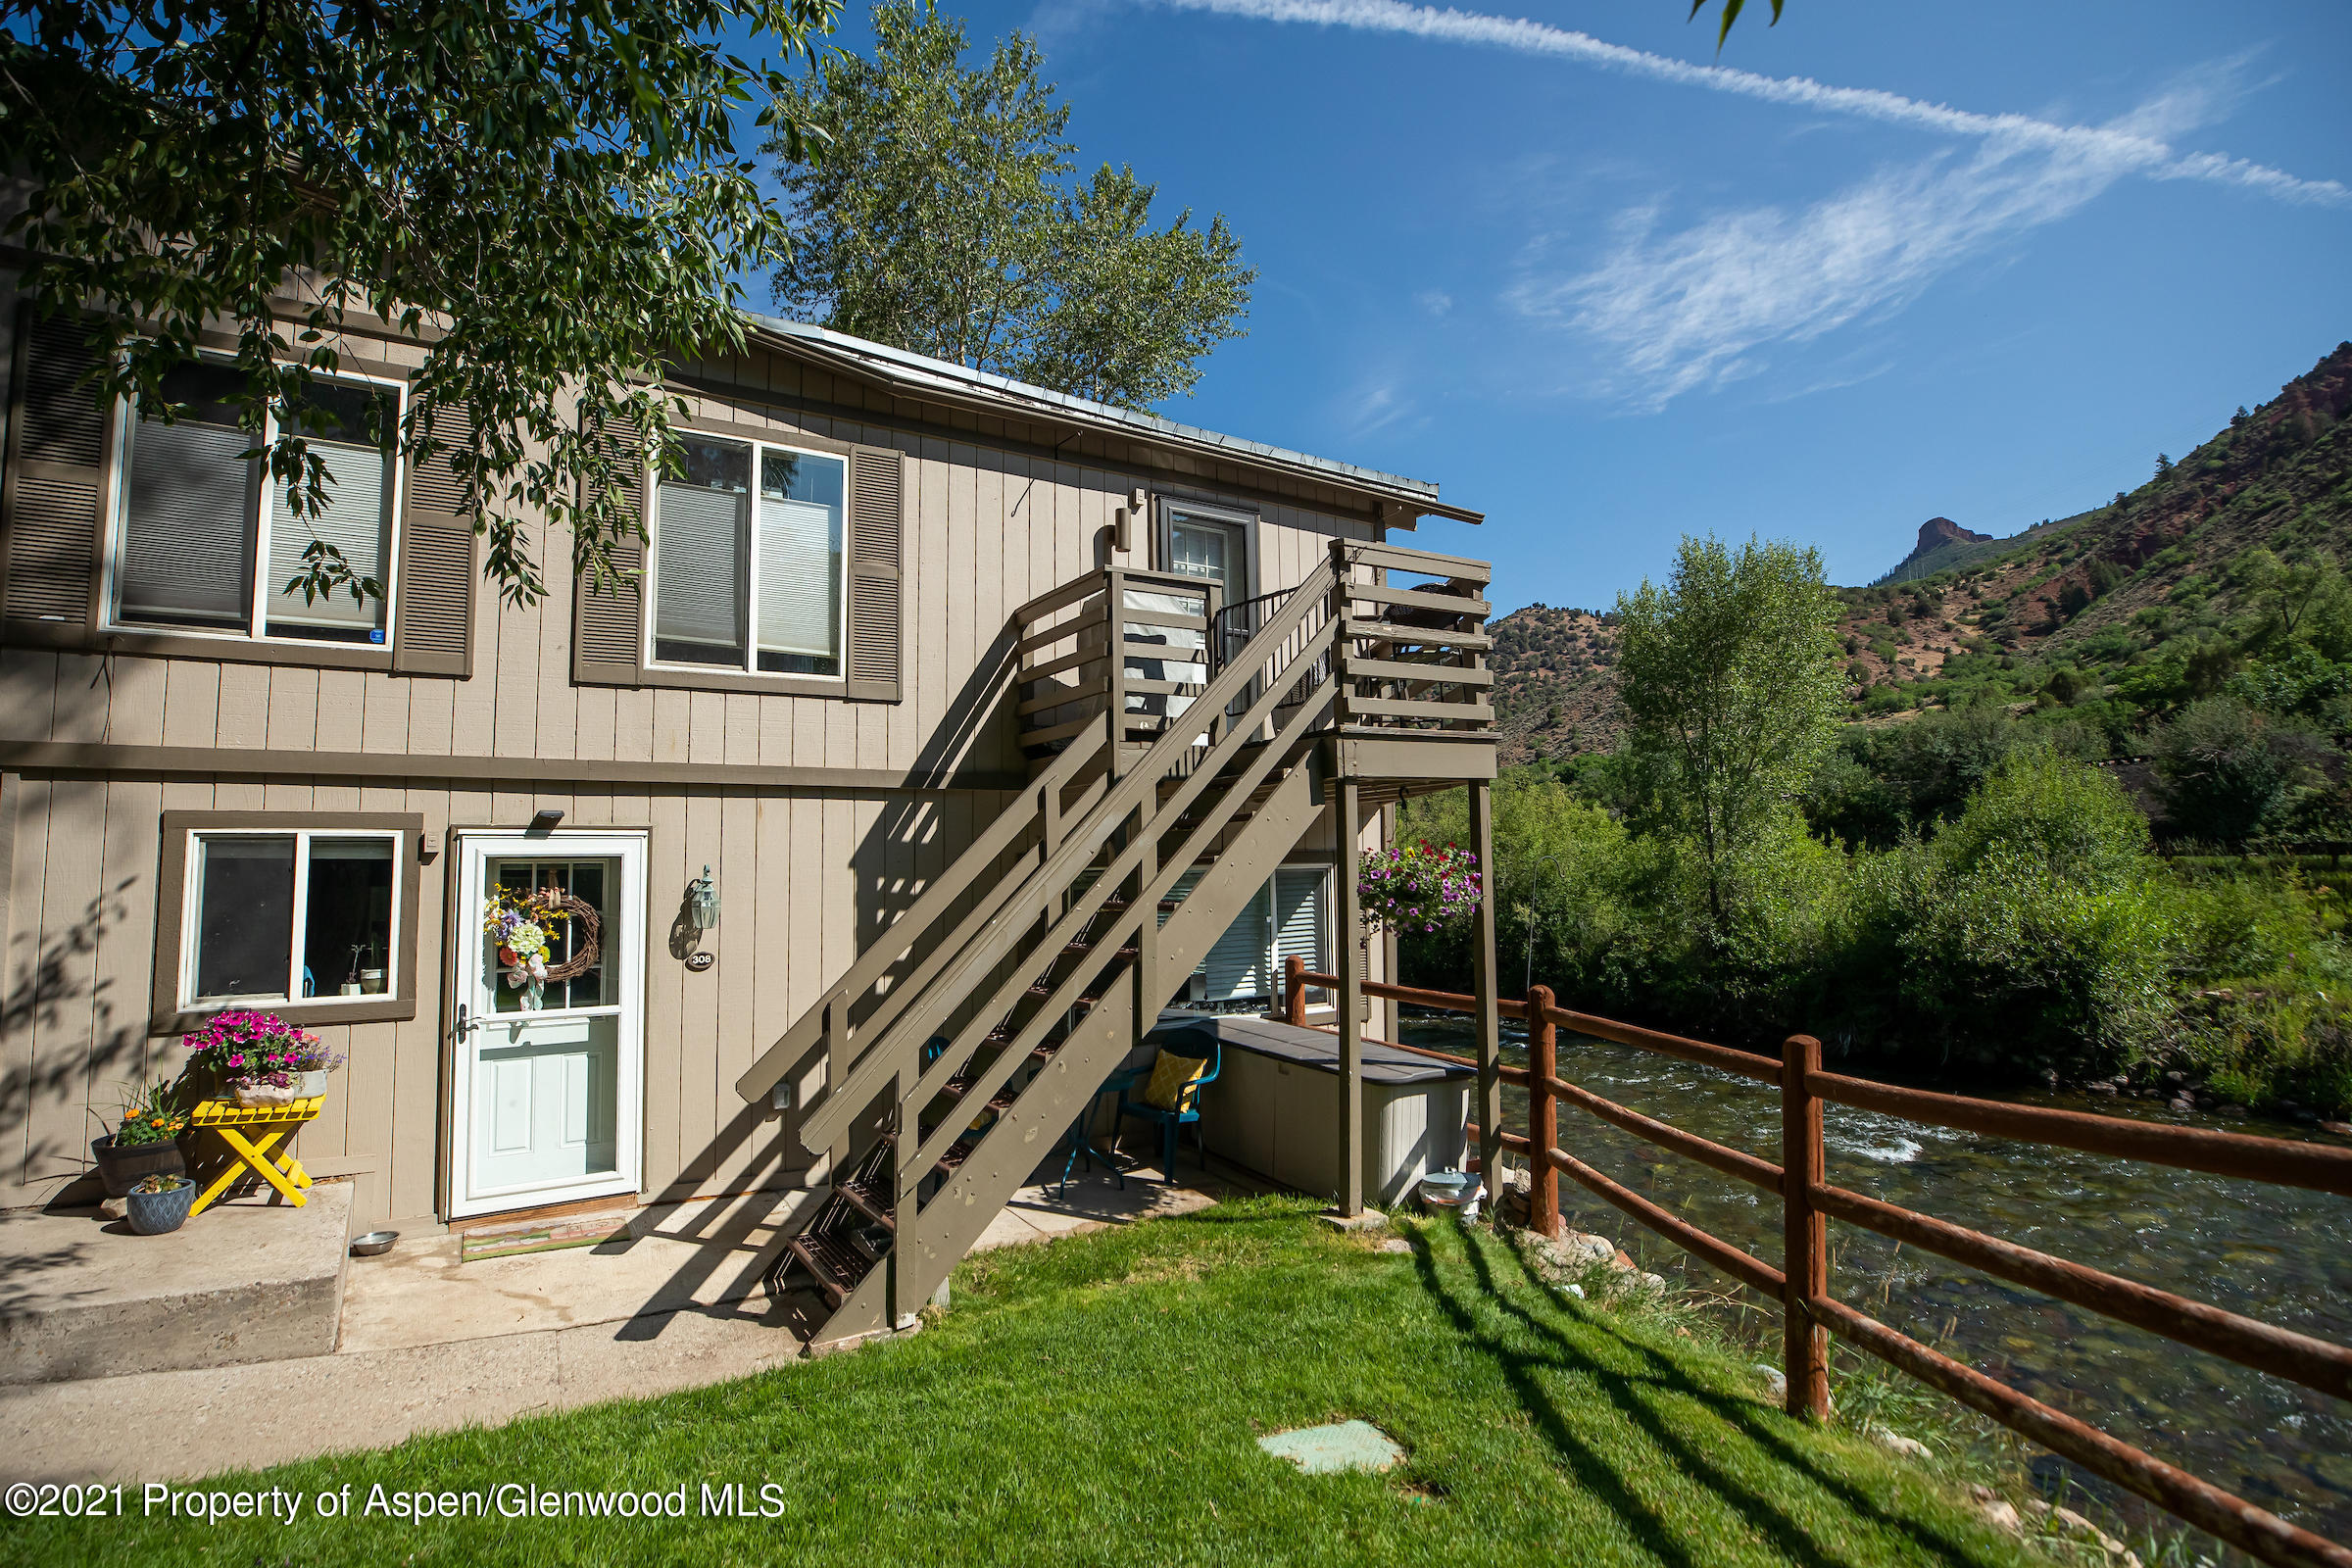 Steps away from the Roaring Fork River, a fly fisherman's dream, this newly remodeled corner one bedroom, one bathroom residence gets ample natural light, has low HOA dues, a large rain shower, and is conveniently located in close proximity to Aspen and Snowmass as well as Basalt.